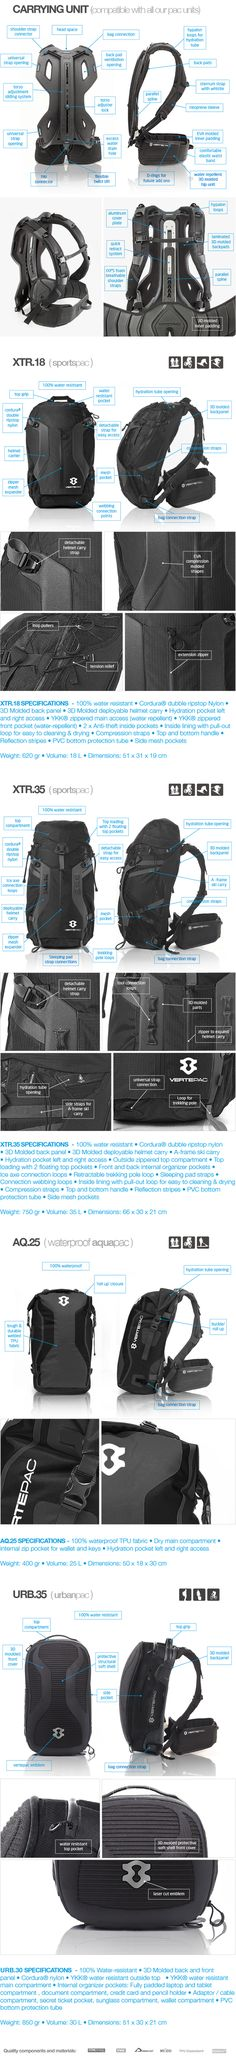 VERTEPAC: World's First Backpack With Its Own Spine. by VERTEPAC — Kickstarter